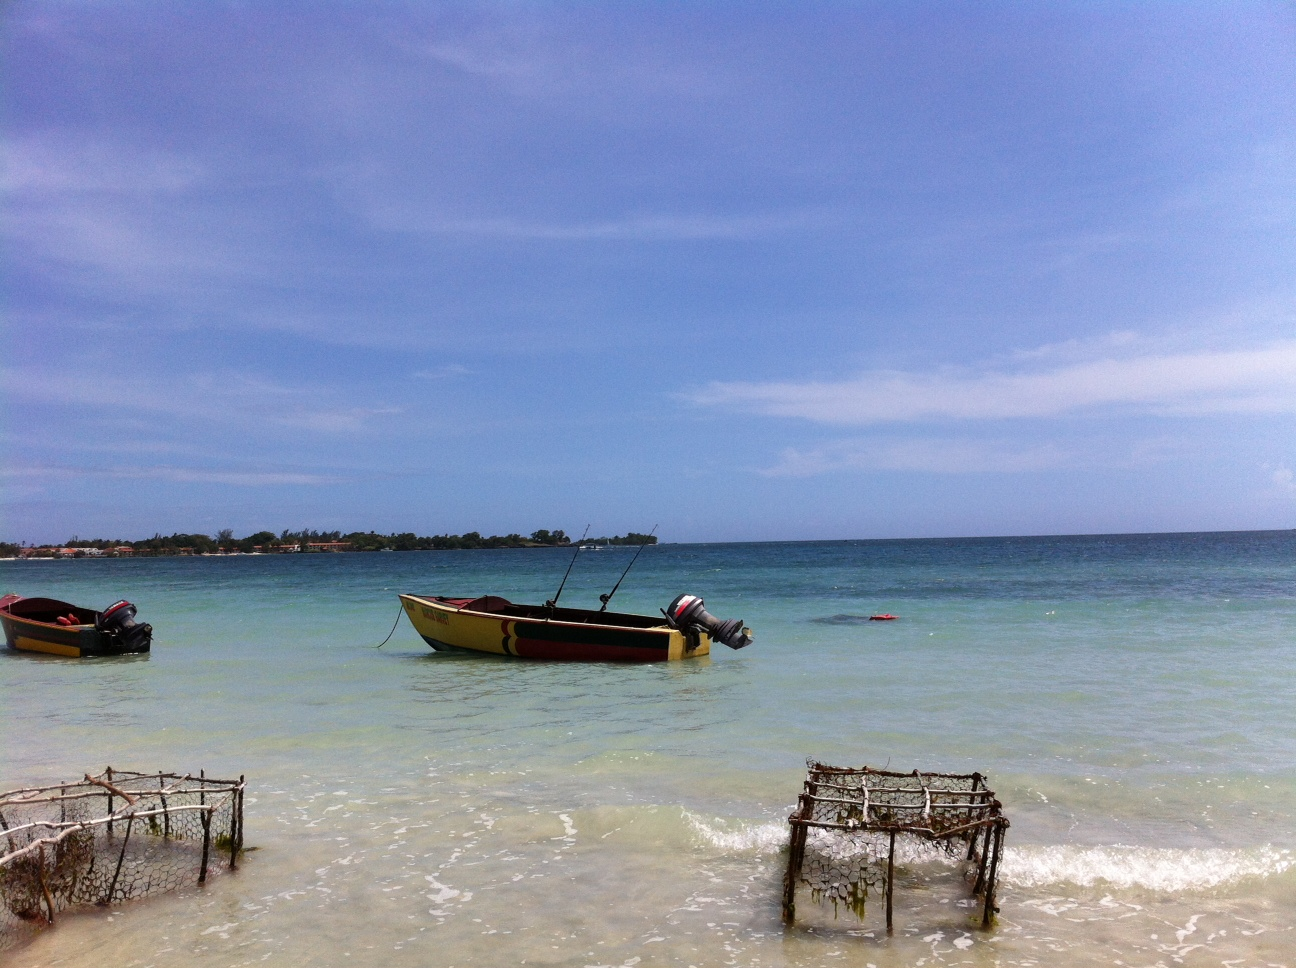 11 Things To Do While Vacationing in Negril, Jamaica